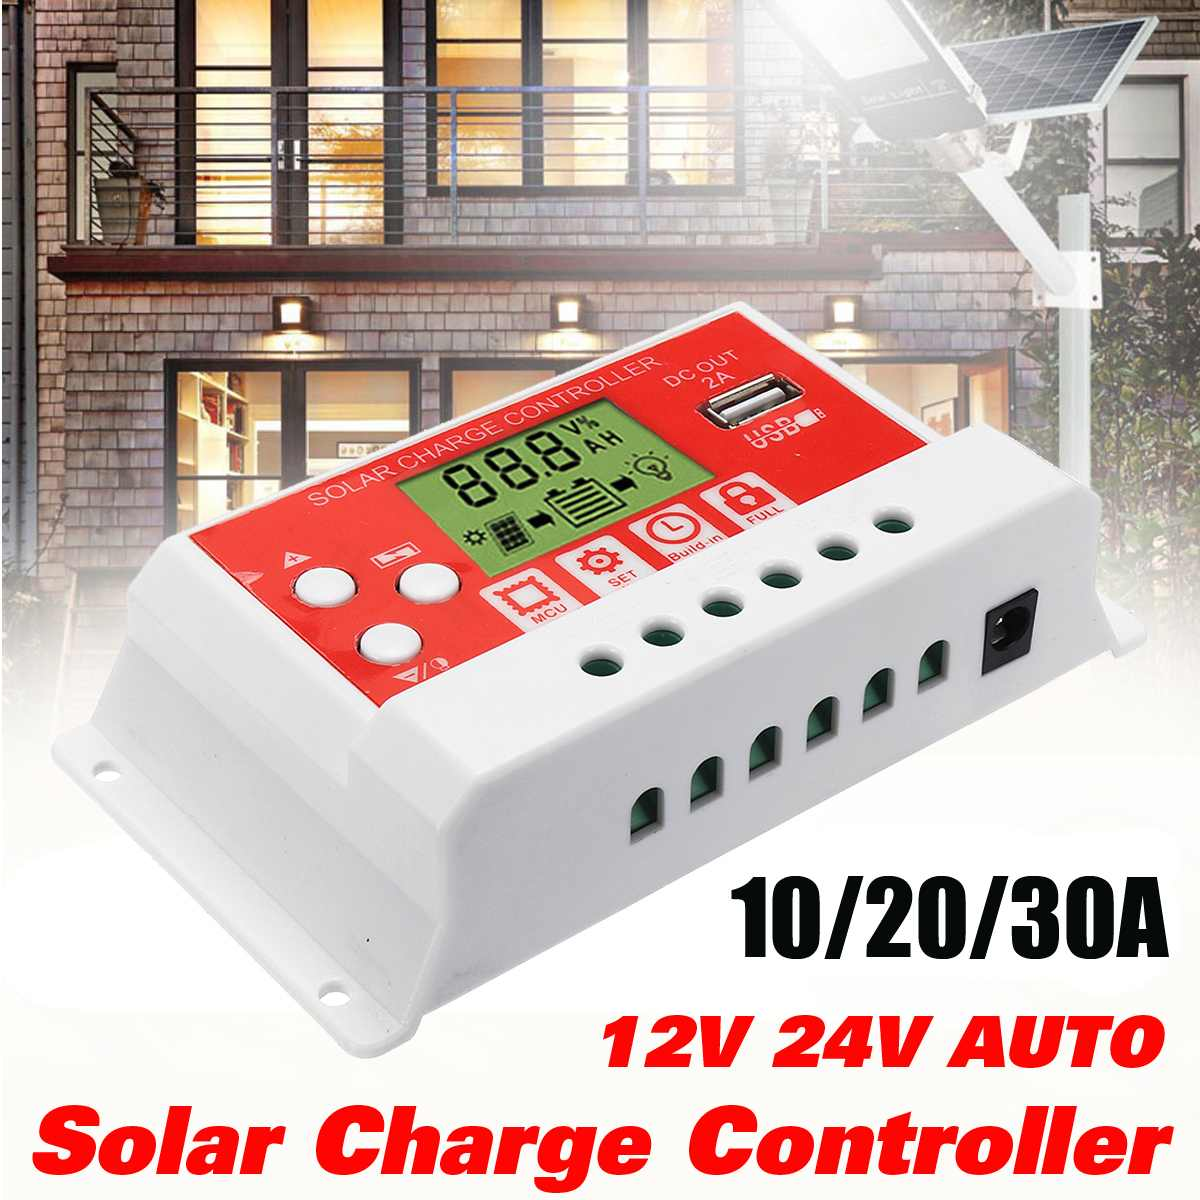 10/20/30A 12V/24V AUTO Solar Charge Controller LCD Display PWM USB Solar Panel Regulator Charge Controller Hot10/20/30A 12V/24V AUTO Solar Charge Controller LCD Display PWM USB Solar Panel Regulator Charge Controller Hot